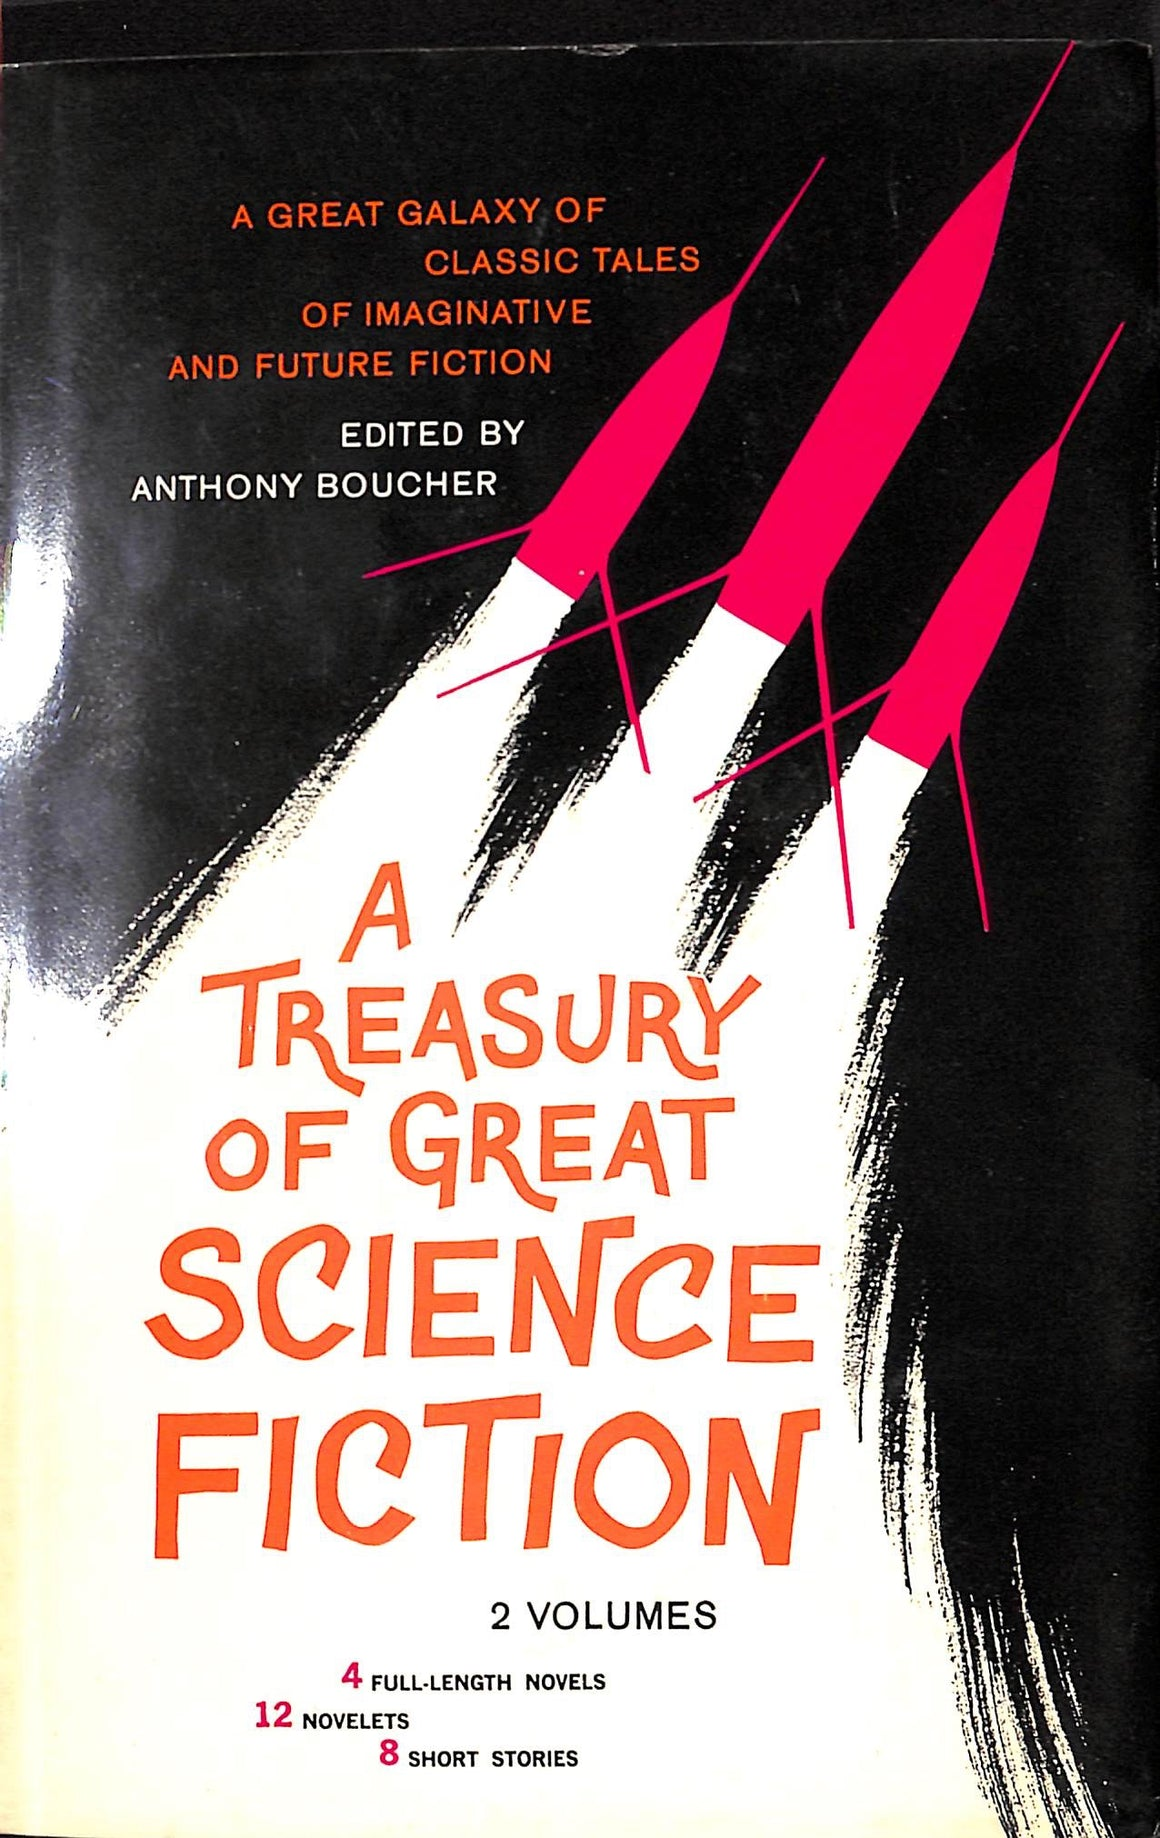 A Treasury of Great Science Fiction by Anthony Boucher